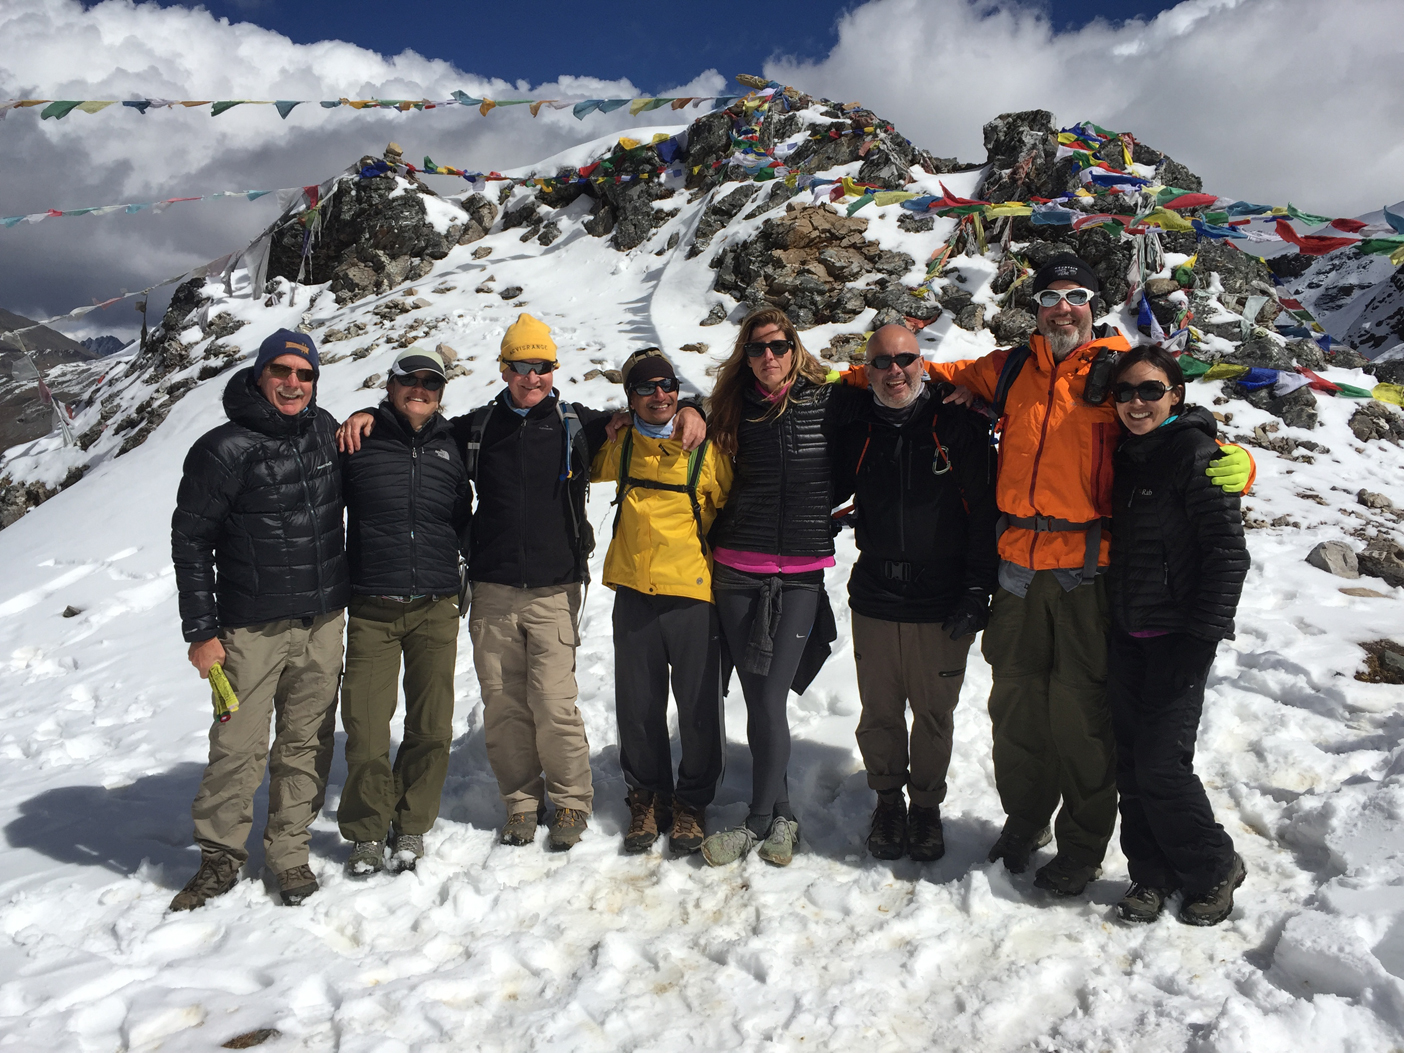 Bonte La Pass, 16,080 ft. (from L to R) Chris, Catherine, Dez, Ayub, Pam, Tomas, David and Mel